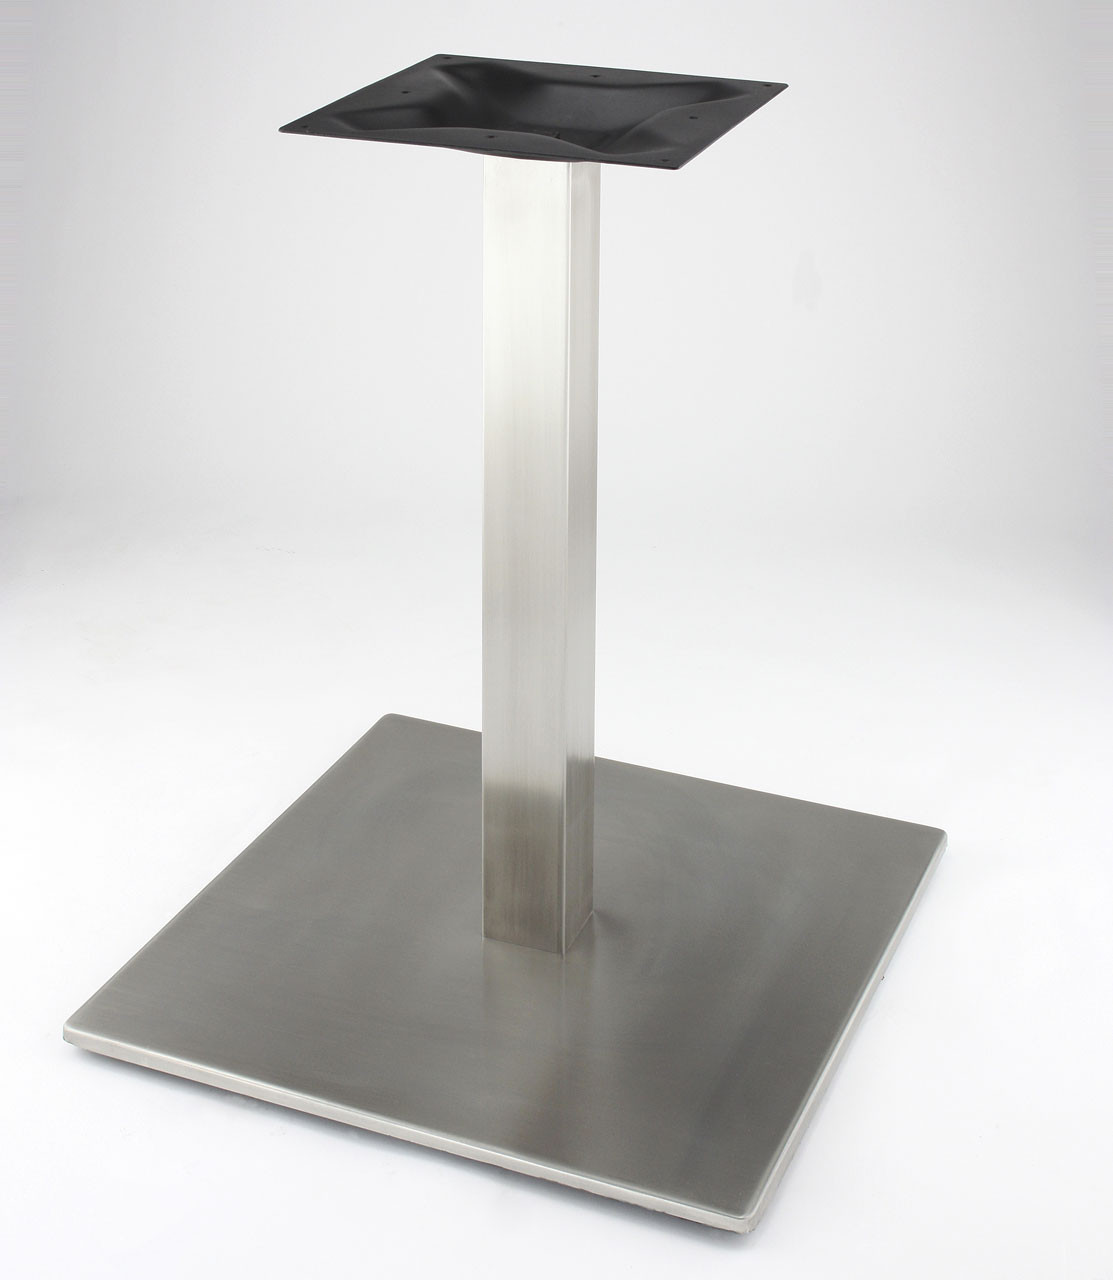 "RSQ540 - Stainless steel, 28.2"" height,  21"" Square base with square 2.75"" square column base shown without table top."